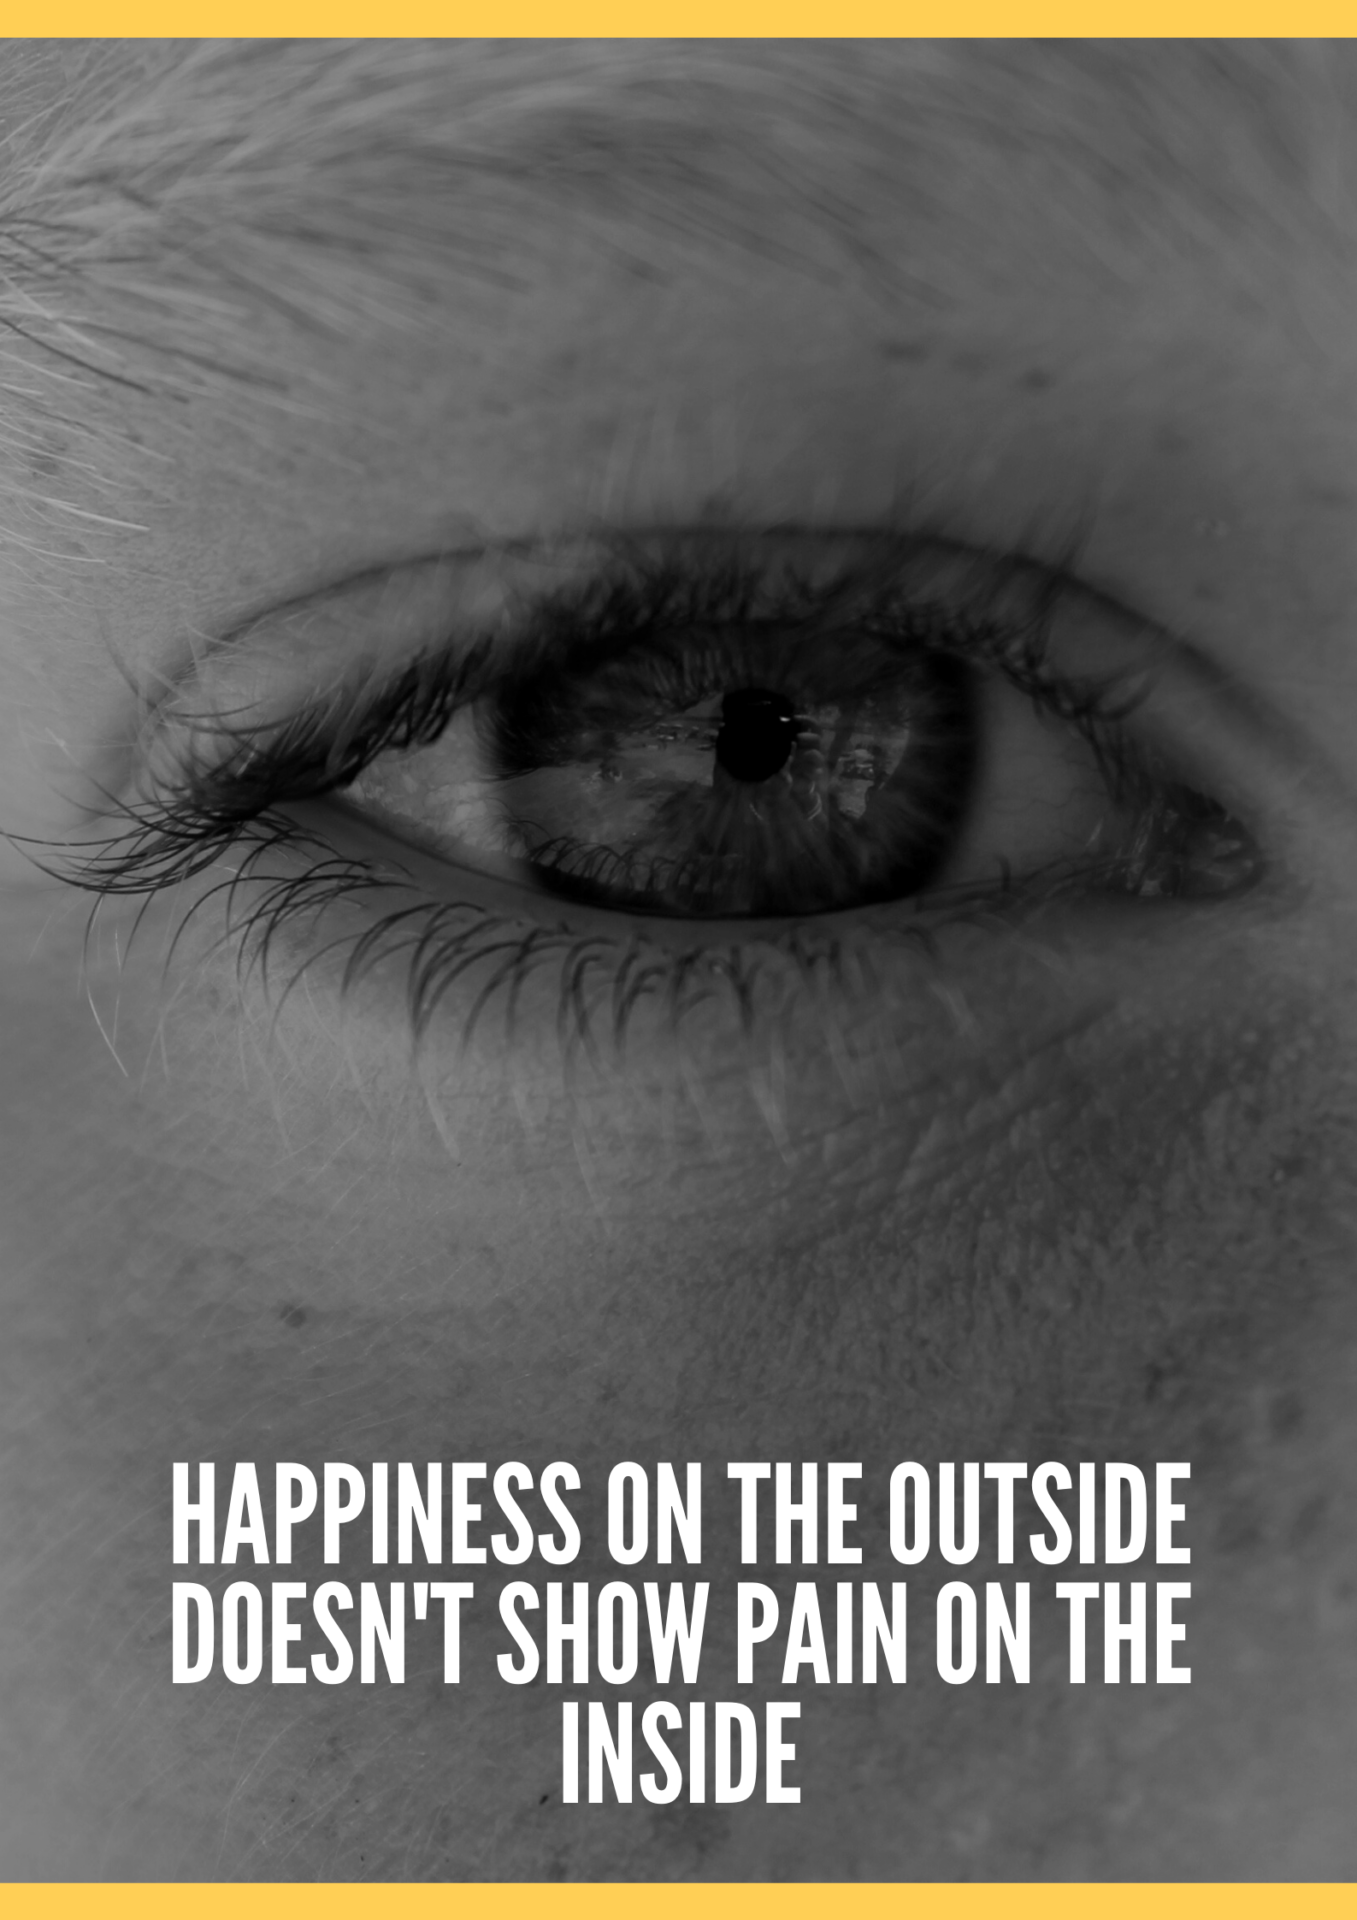 happiness on the outside doesn't show pain on the inside